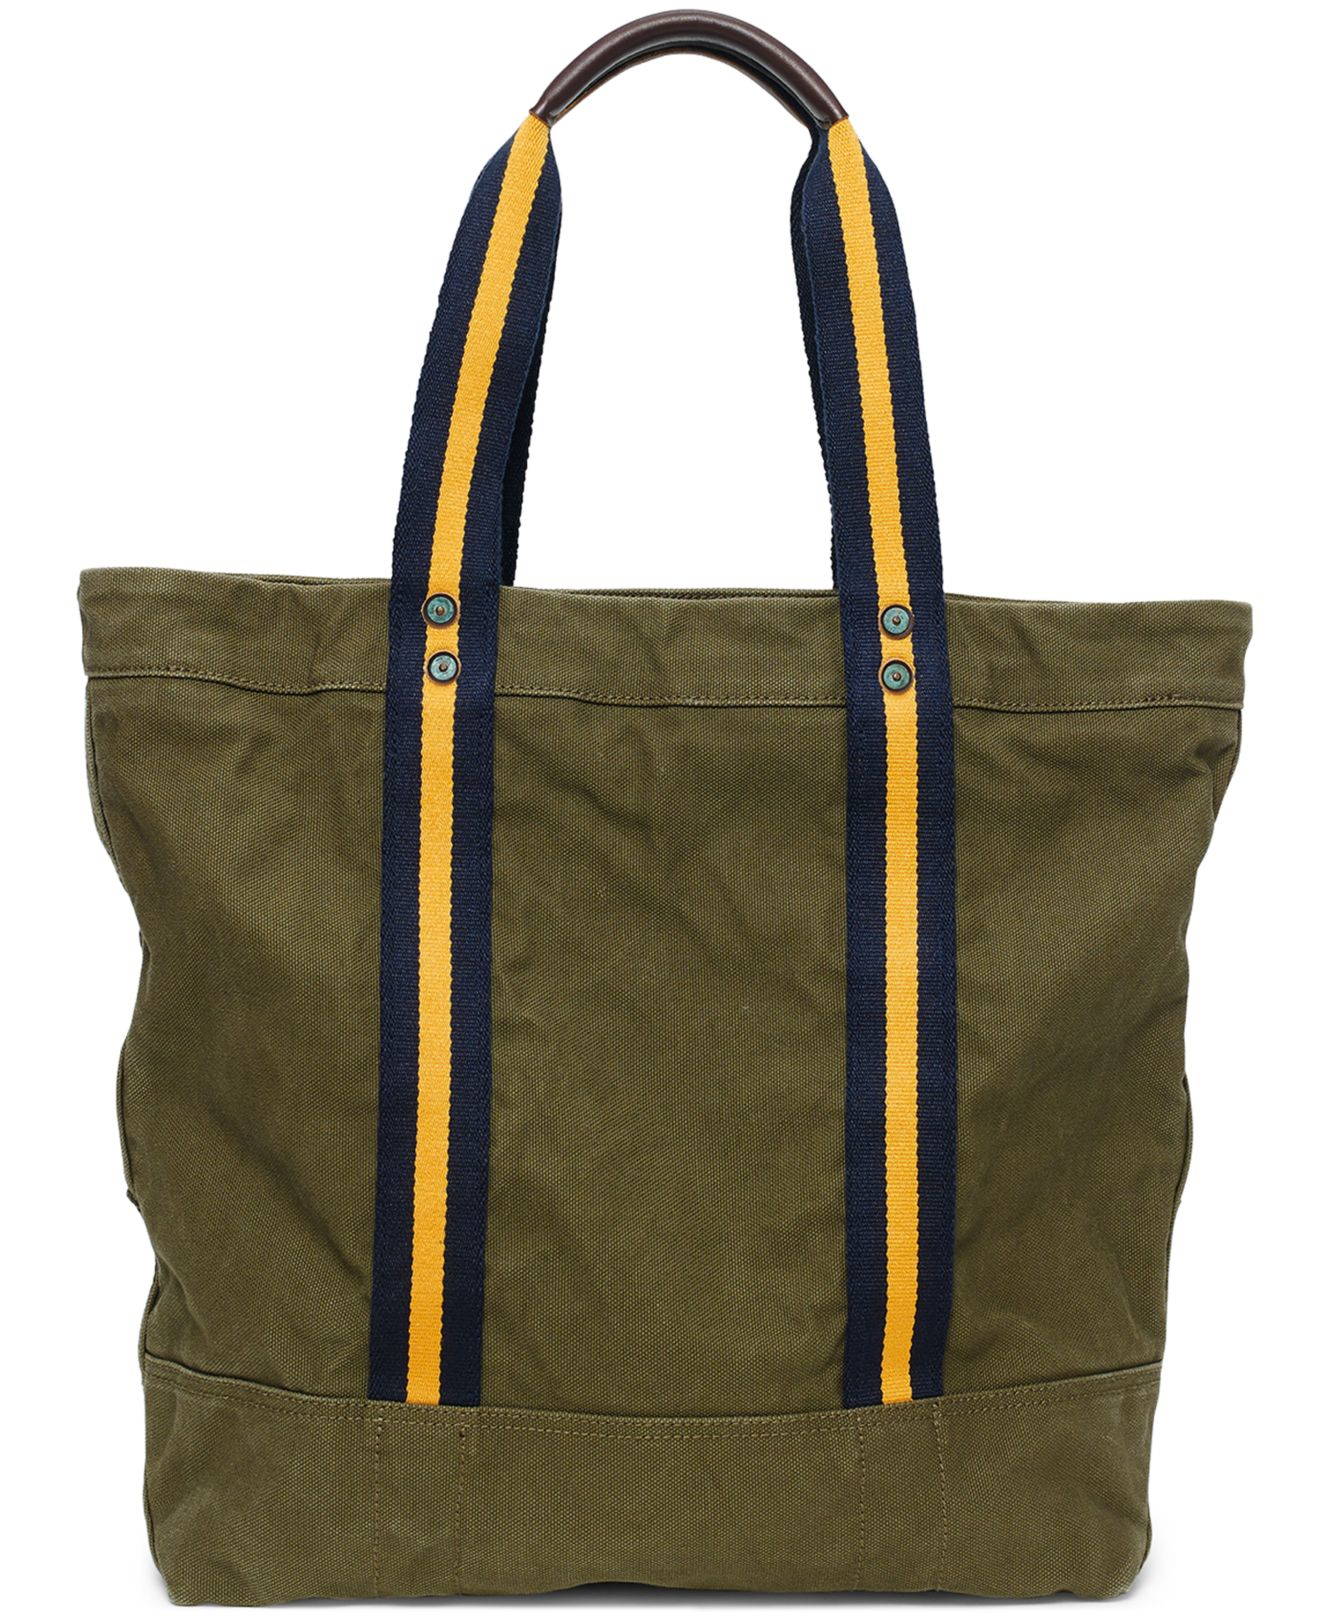 Lyst - Polo Ralph Lauren Big Pony Canvas Tote in Green for Men 41c6a07fb6